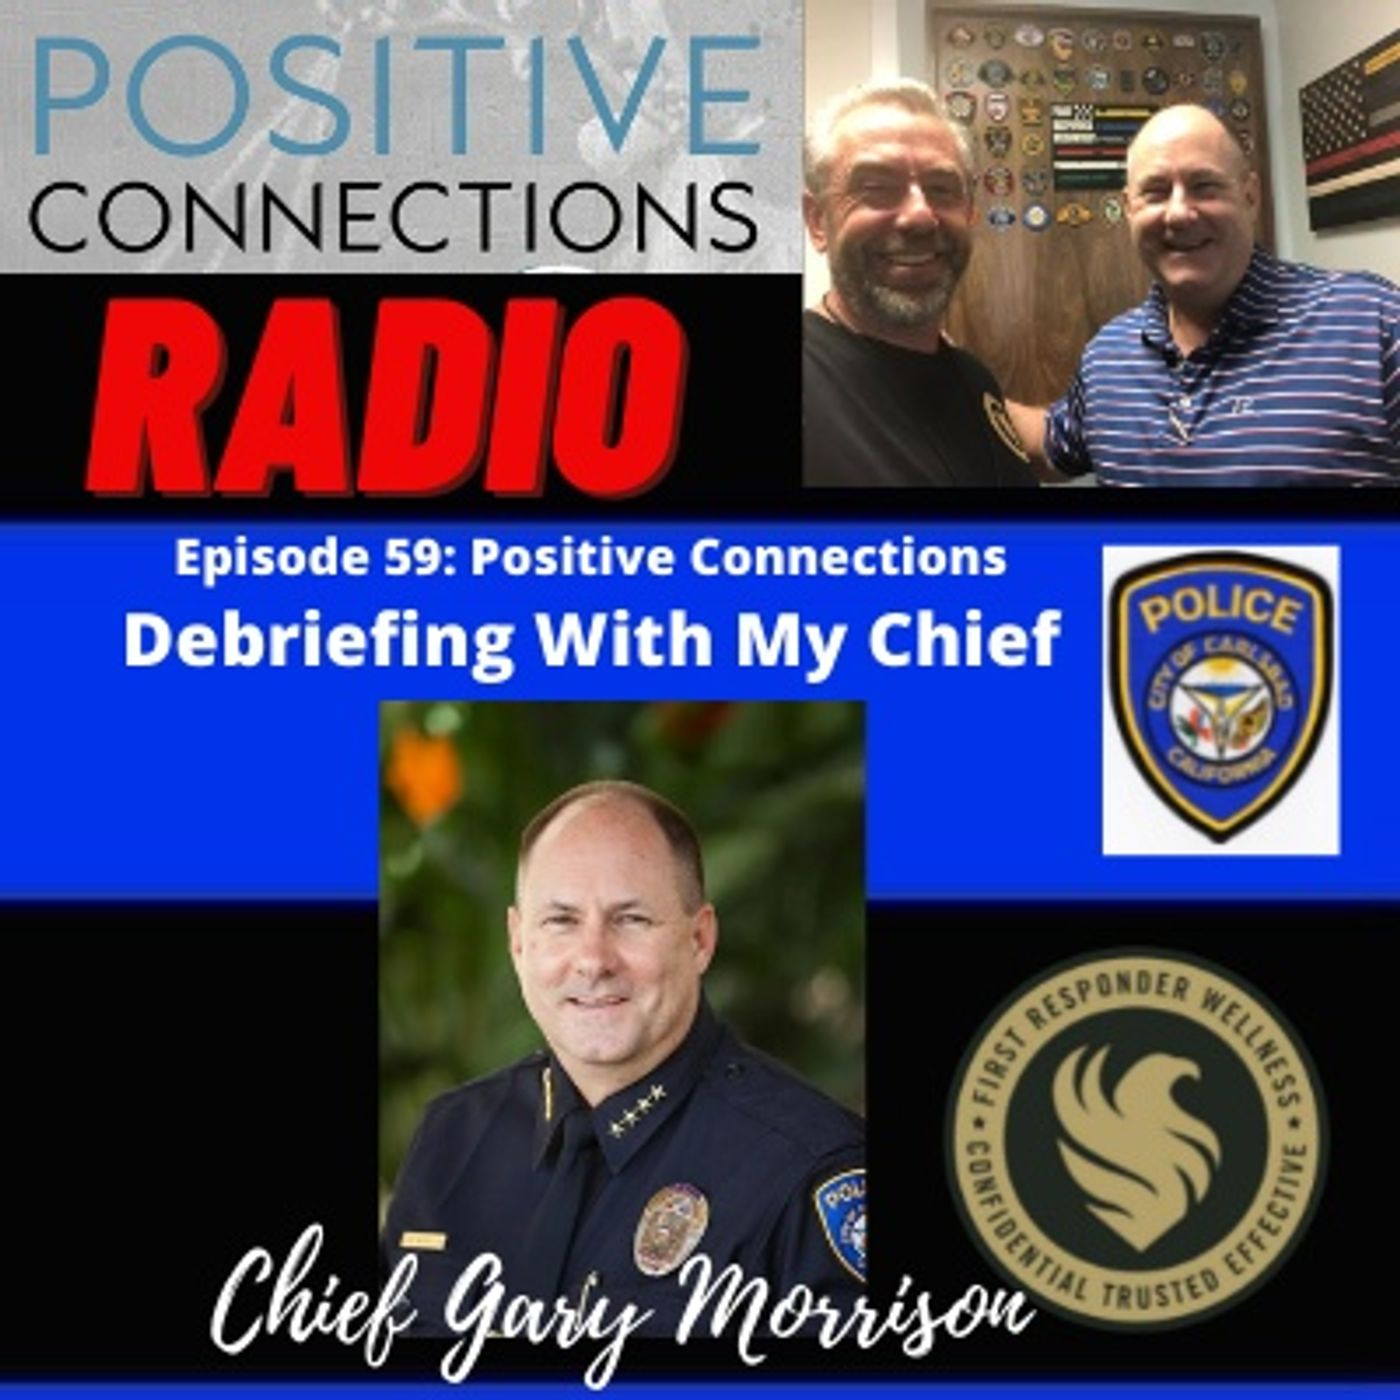 Debriefing With My Chief:  Former Carlsbad Police Chief Gary Morrison.